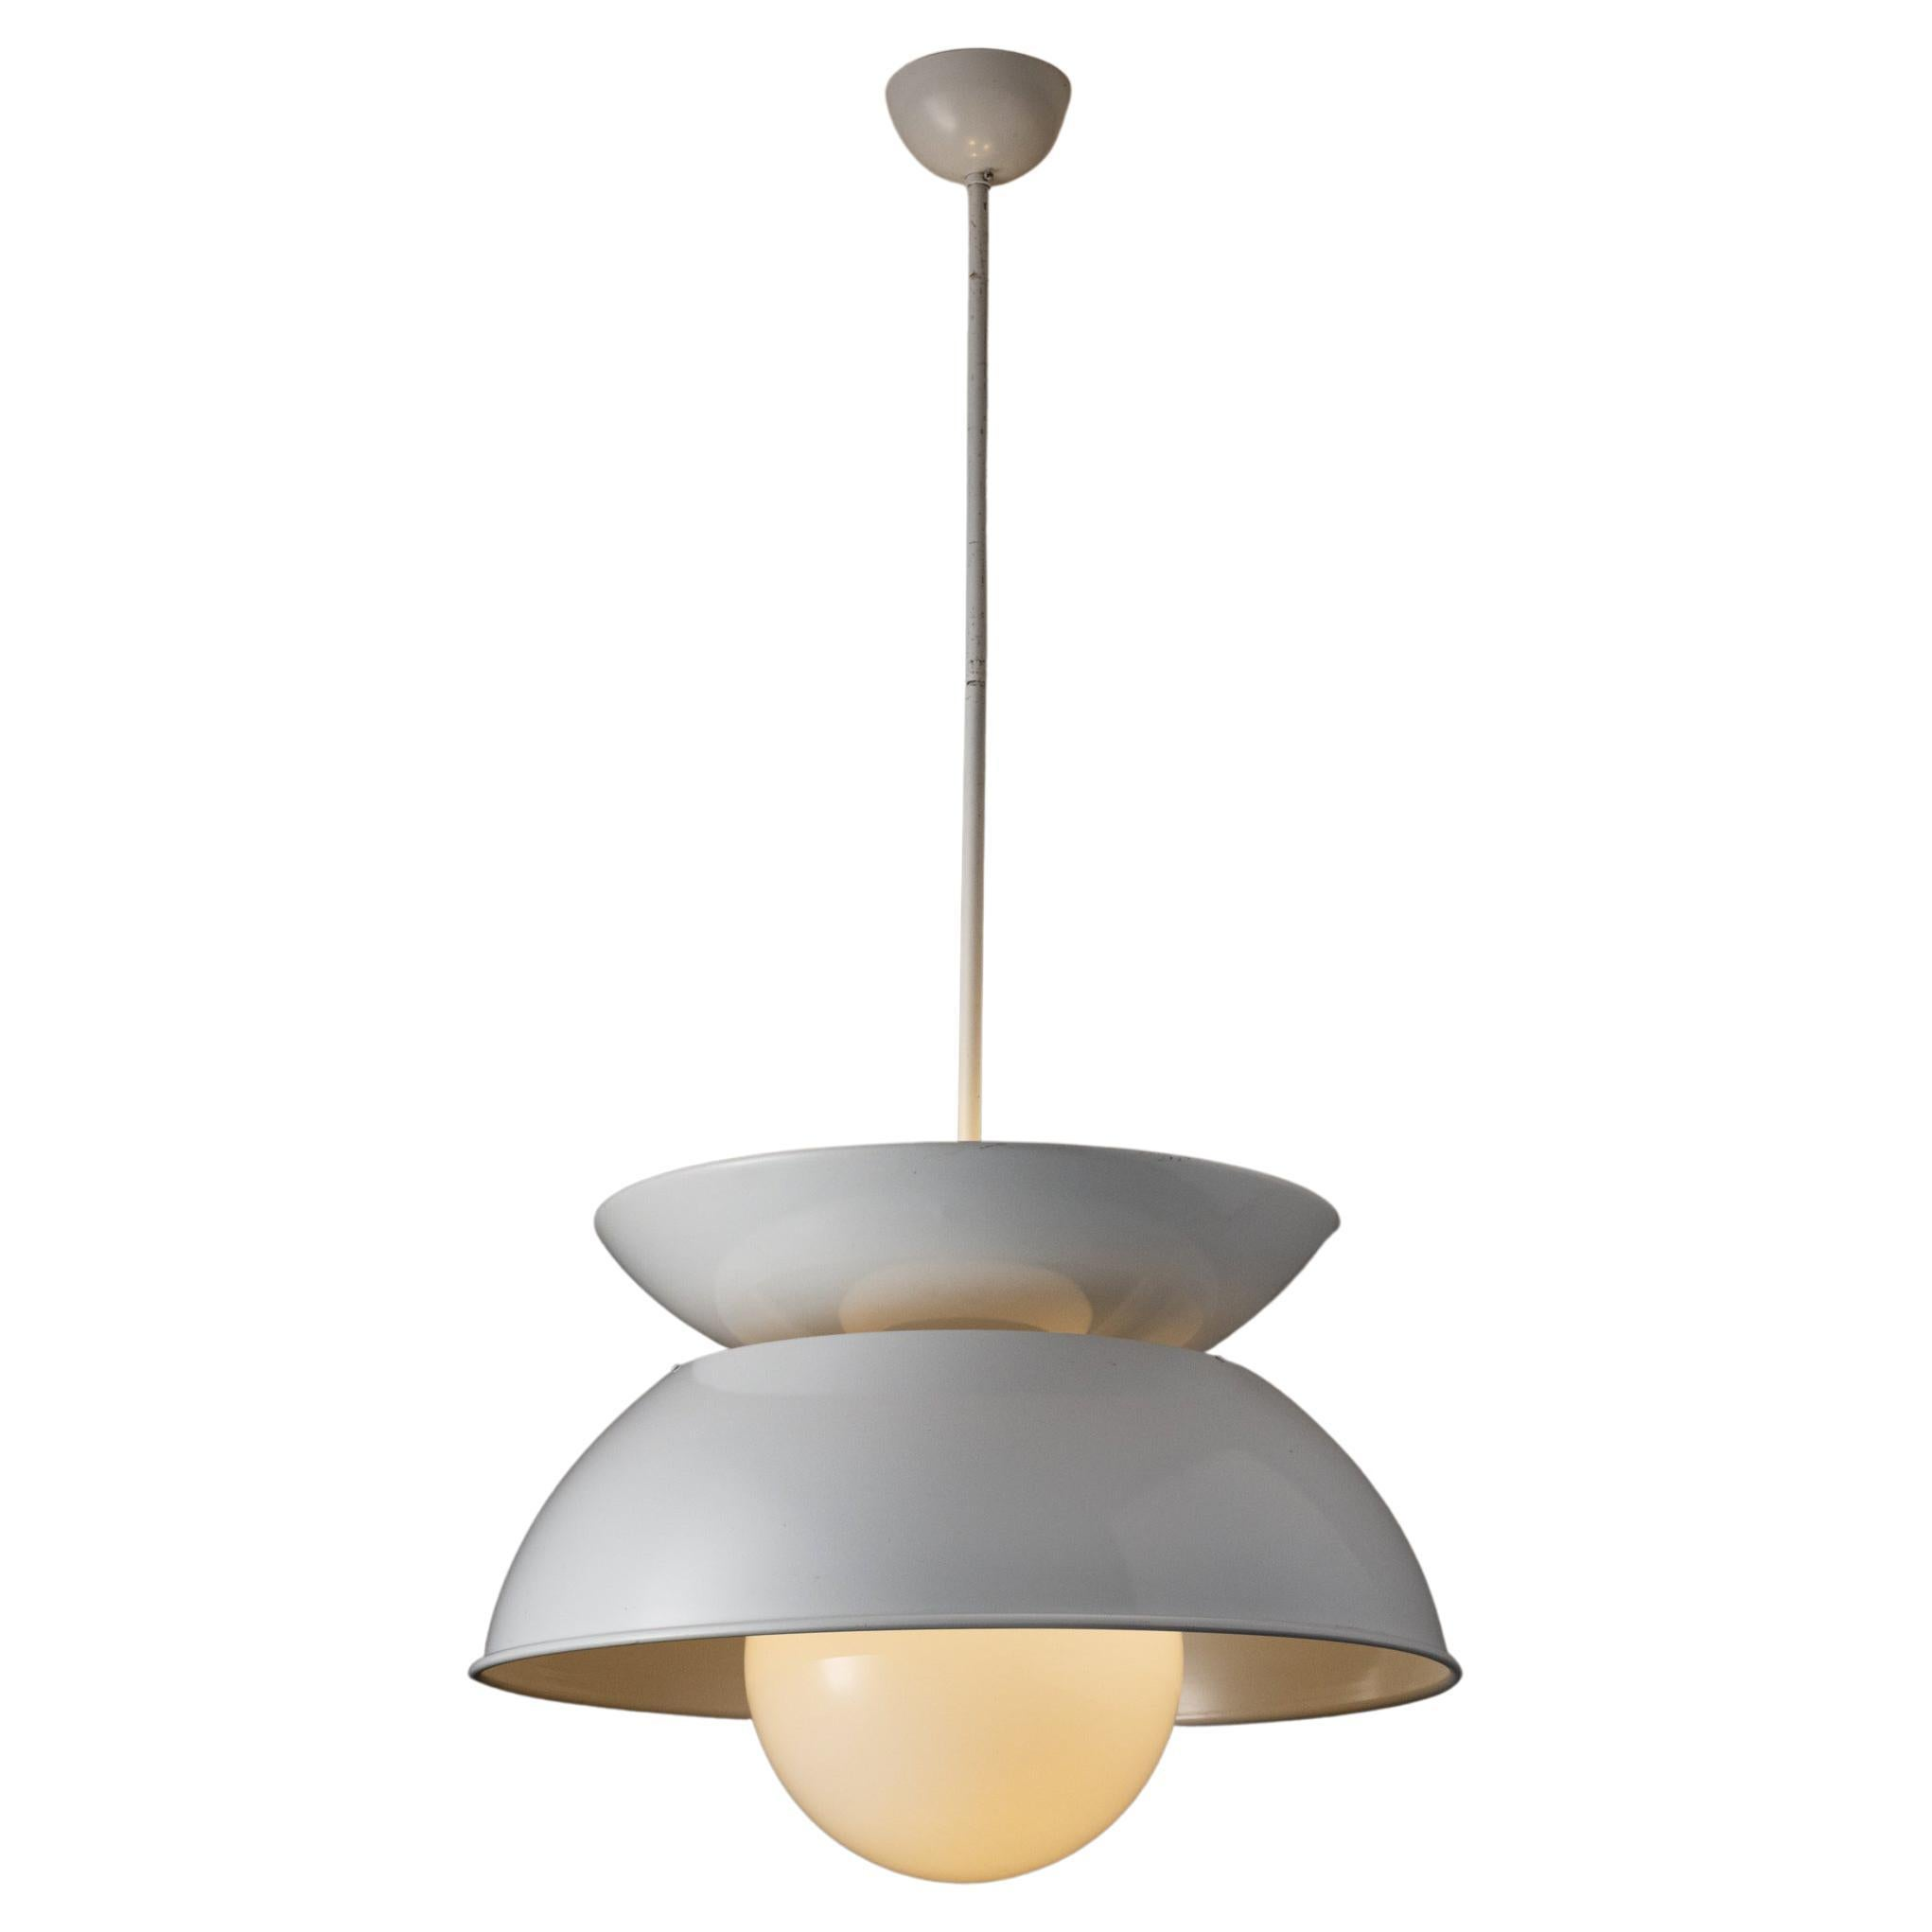 """""""Cetra"""" Ceiling Light by Vico Magistretti for Artemide"""